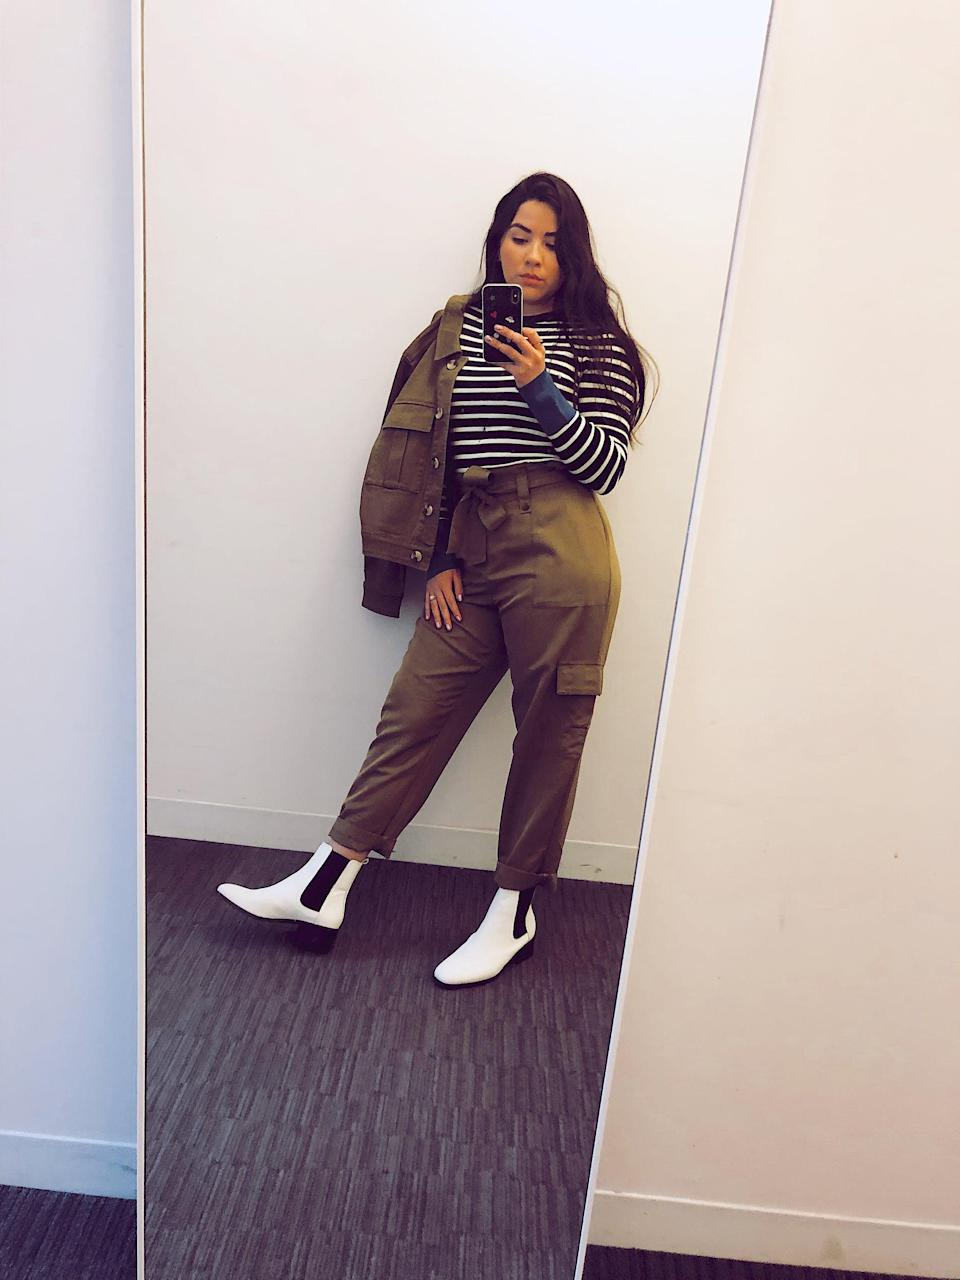 """<p>""""I love a good set - it makes getting dressed infinitely easier. The modern suiting feel that comes with this utility jacket and pants is all I need to feel ready for work after the holidays. With a striped top and white boots, I'm comfortable yet polished, which is pretty much my 2020 style vibe!"""" - Melissa San Vicente, art director</p>"""